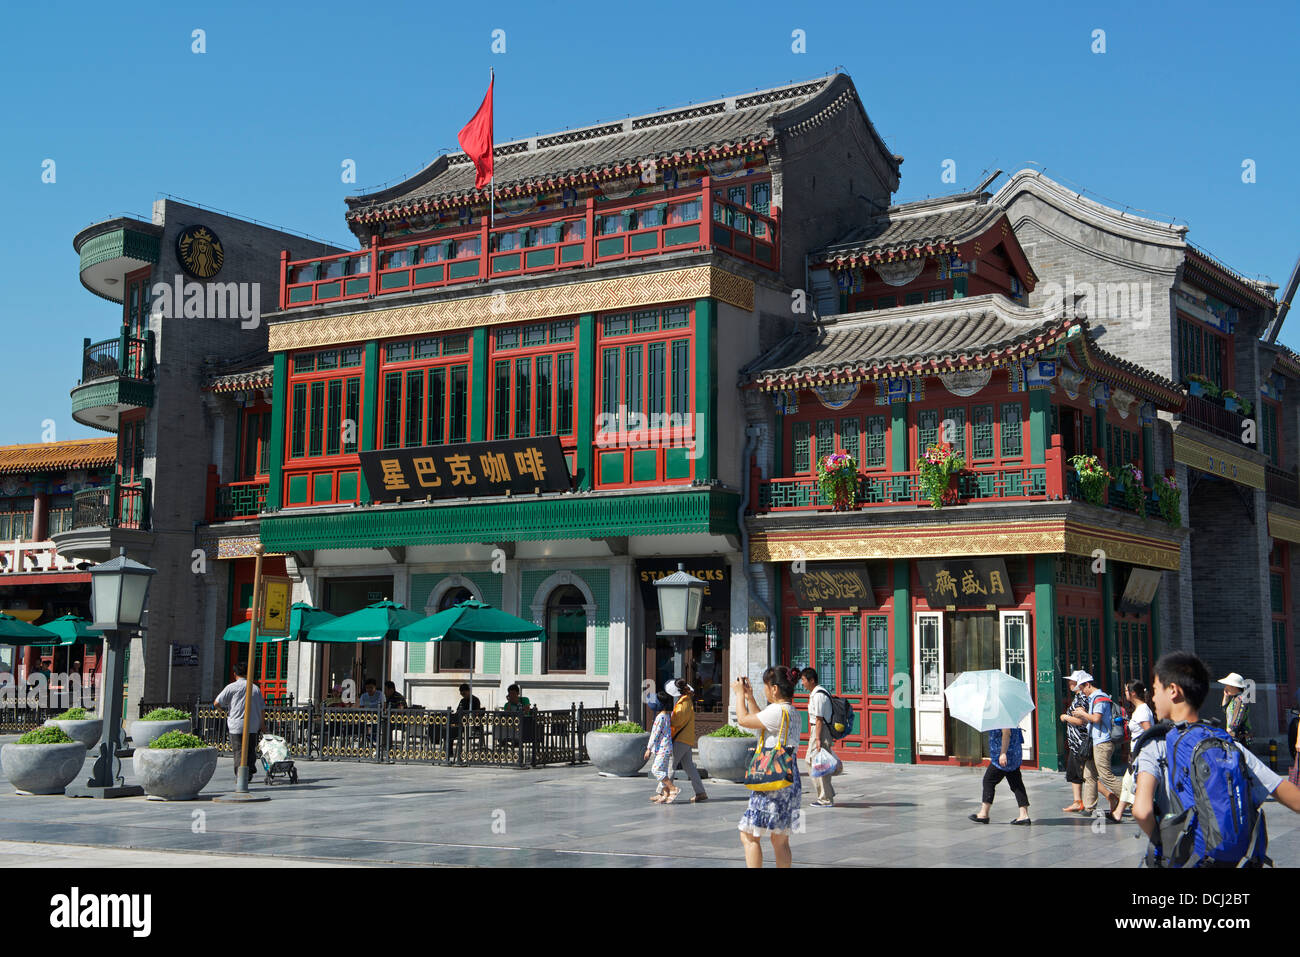 A Starbucks Coffeehouse at Qianmen Street in Beijing, China. 2013 - Stock Image